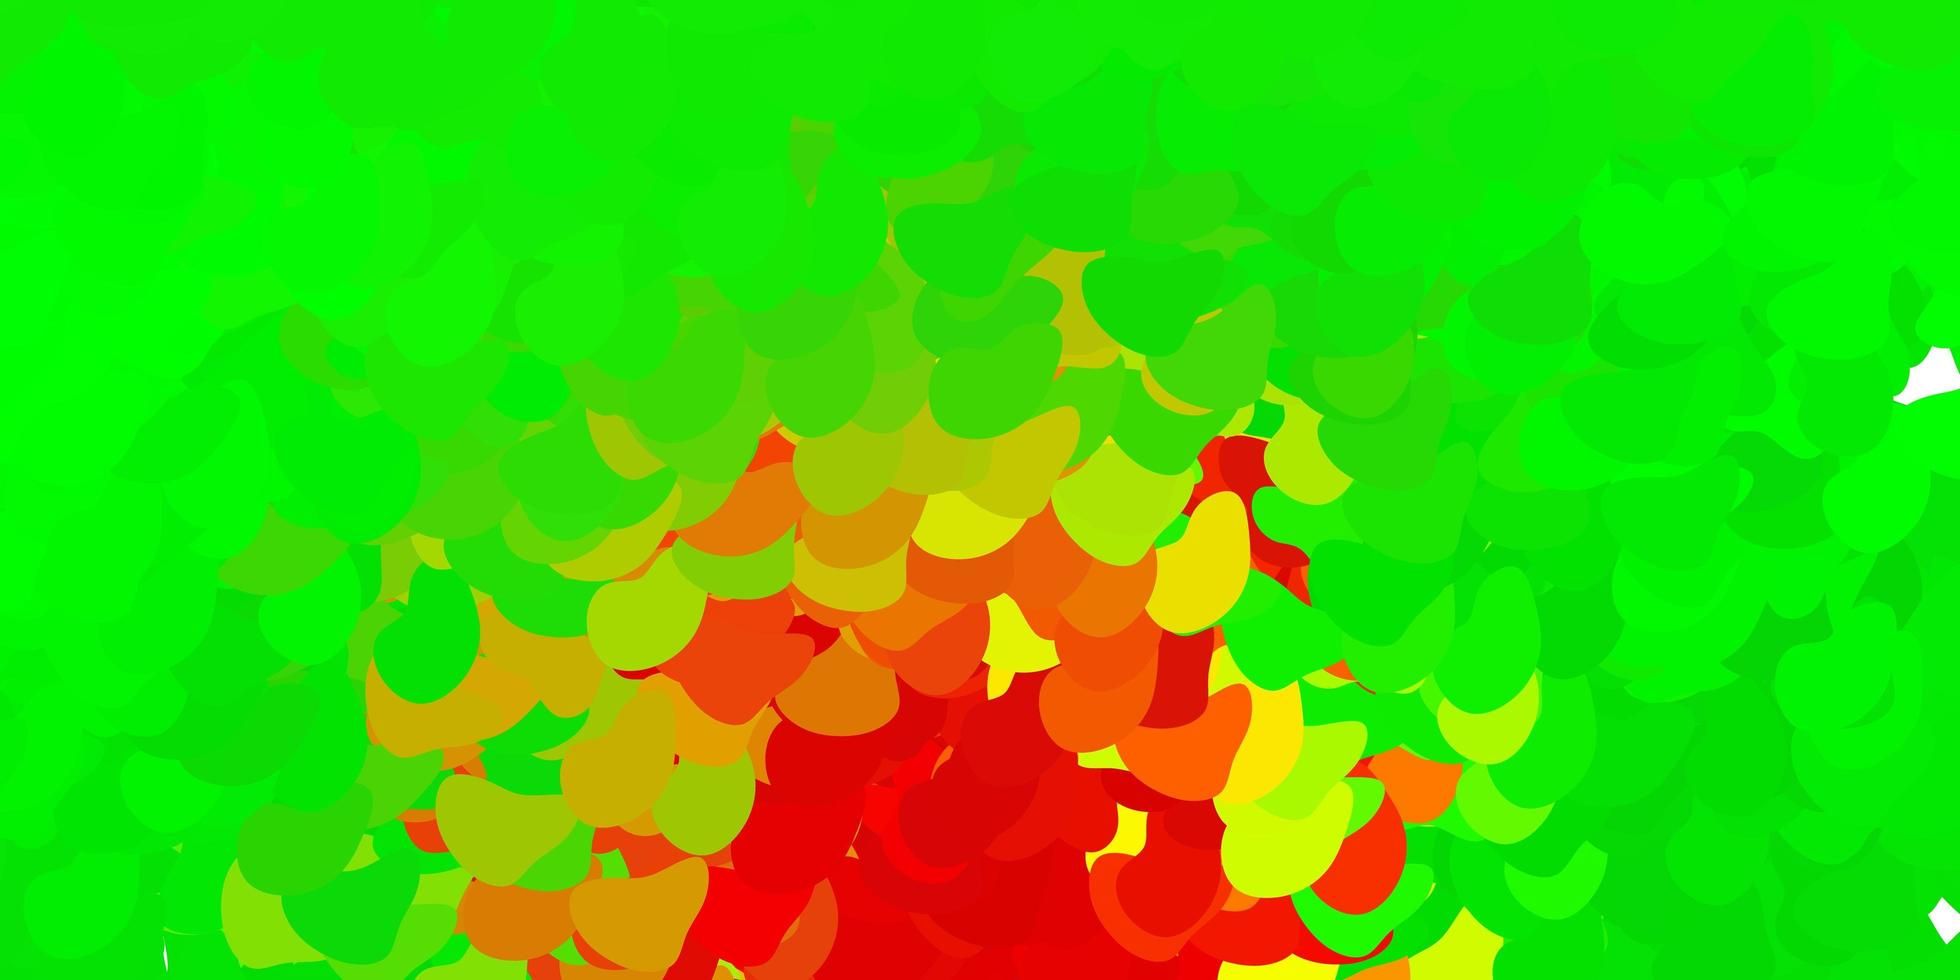 Light green, red vector background with random forms.